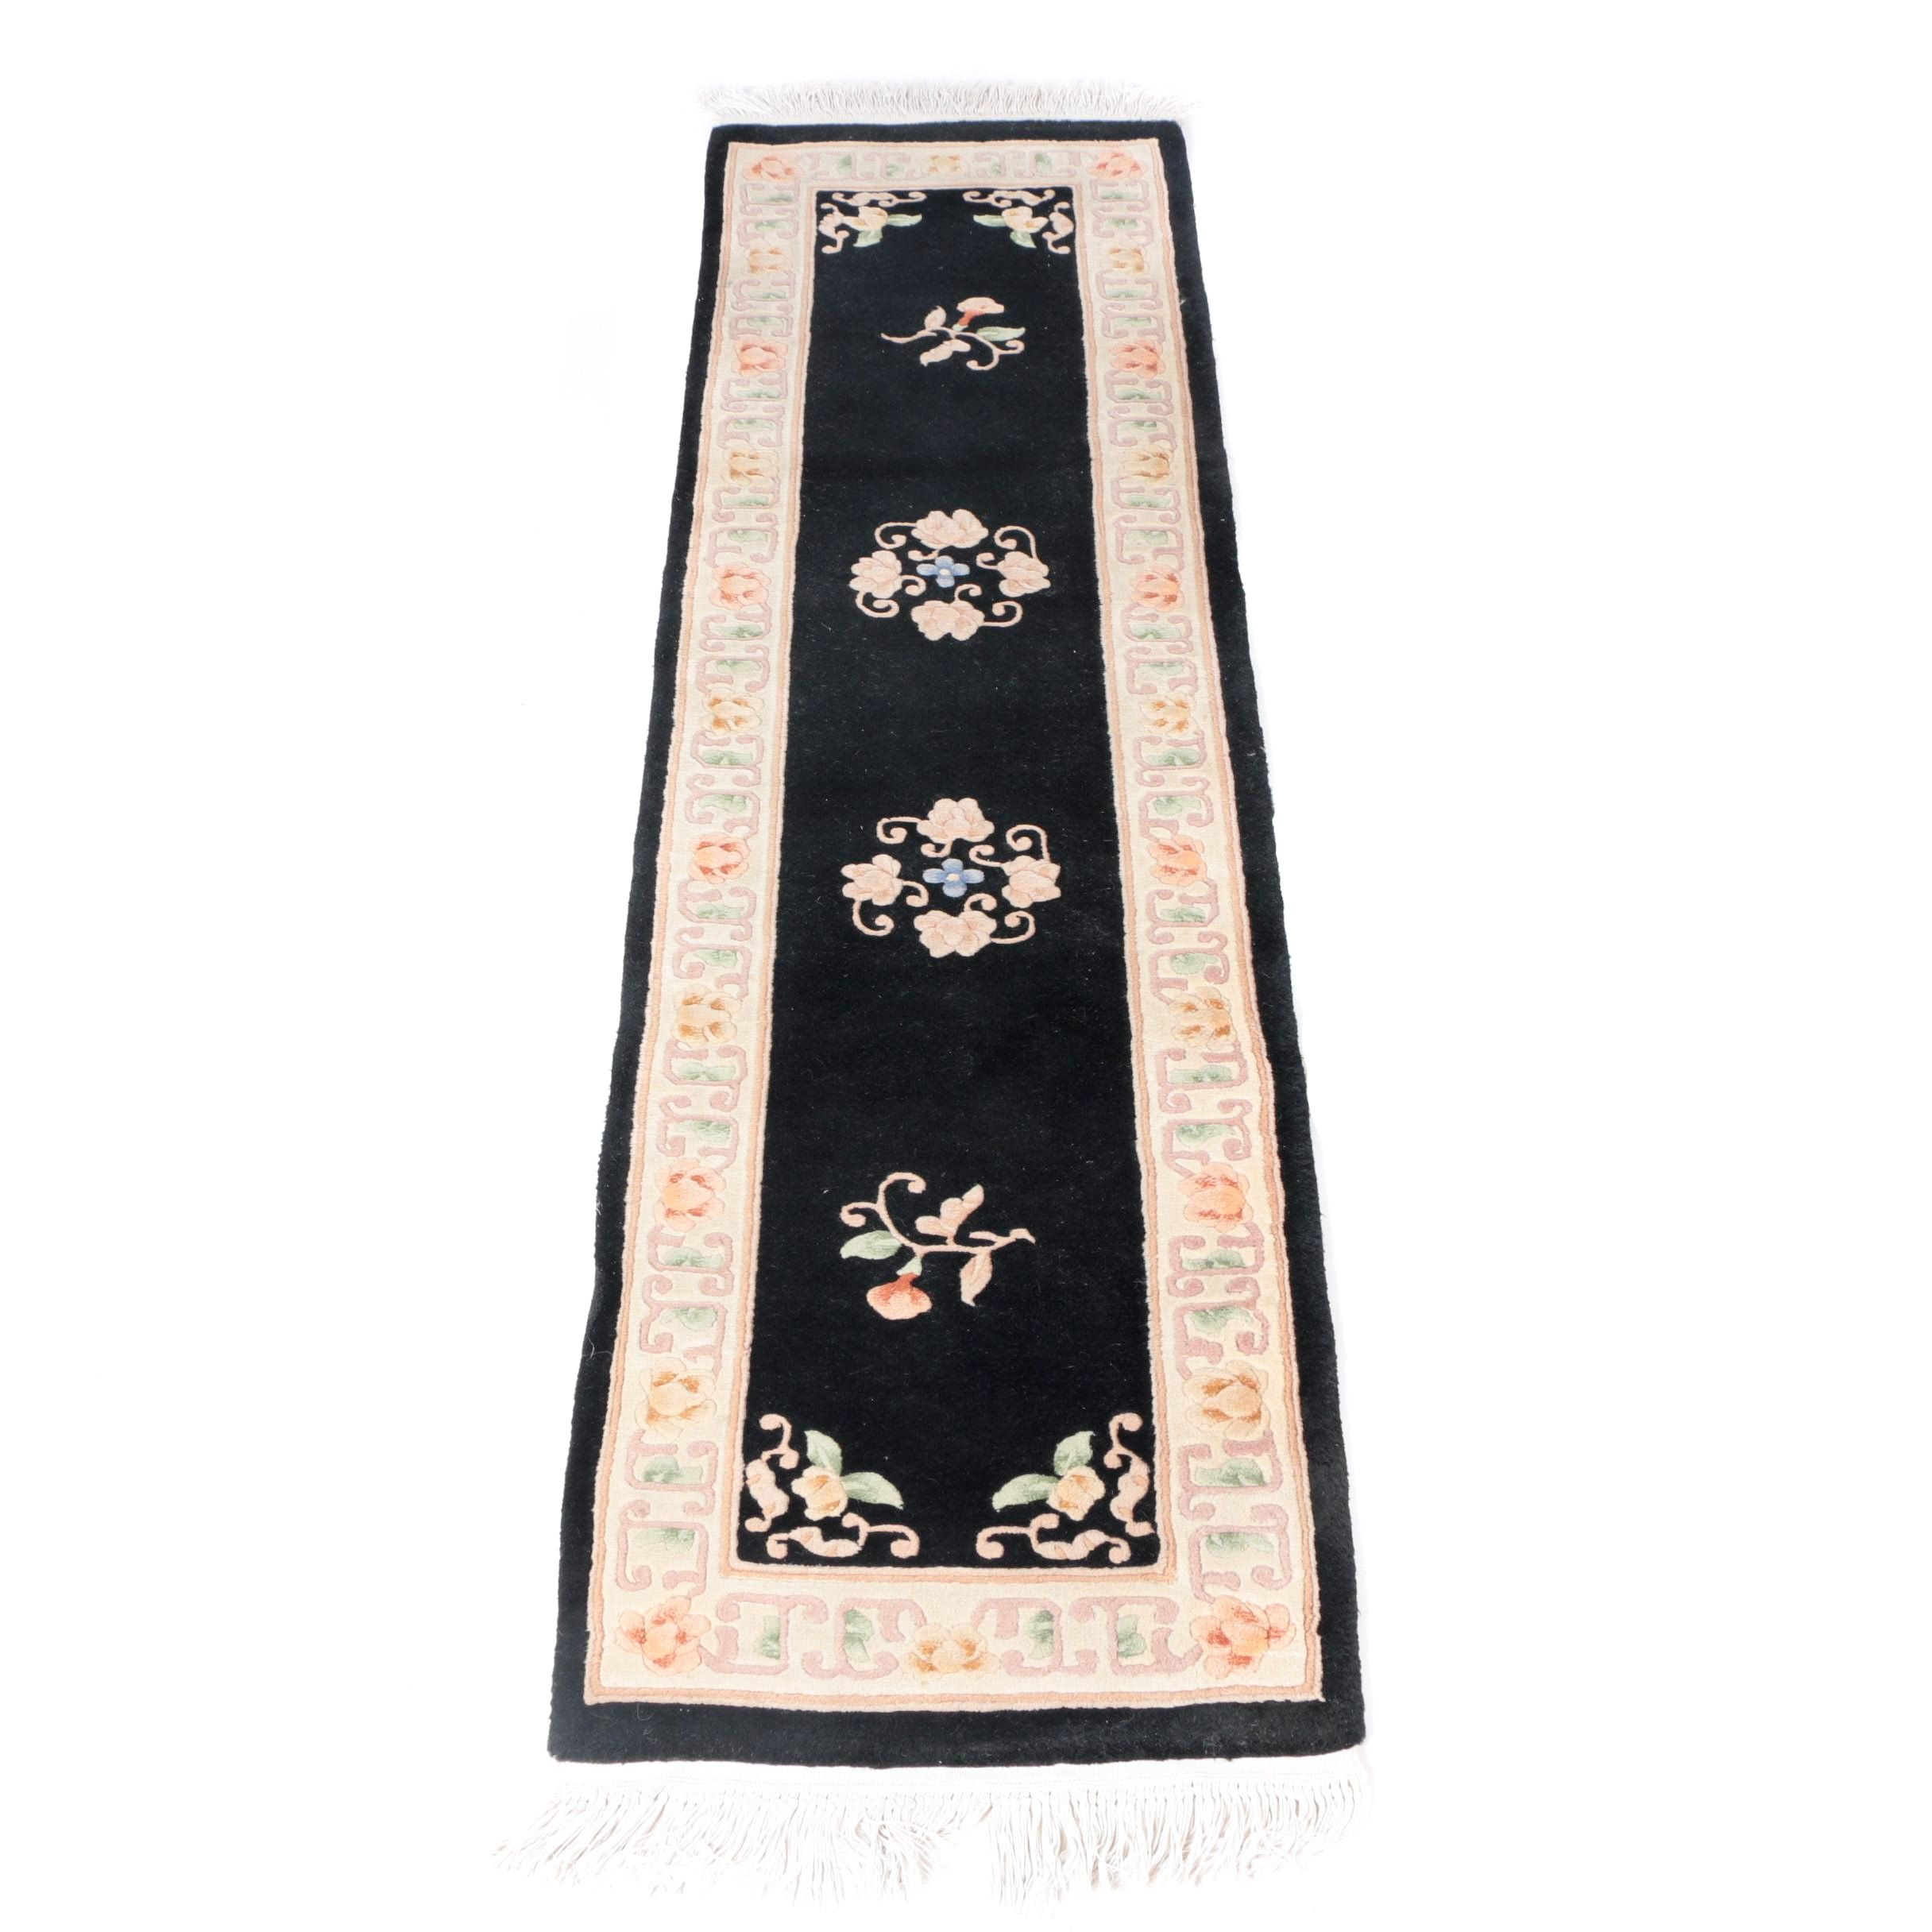 Hand-Knotted and Carved Chinese Old Peking-Style Carpet Runner